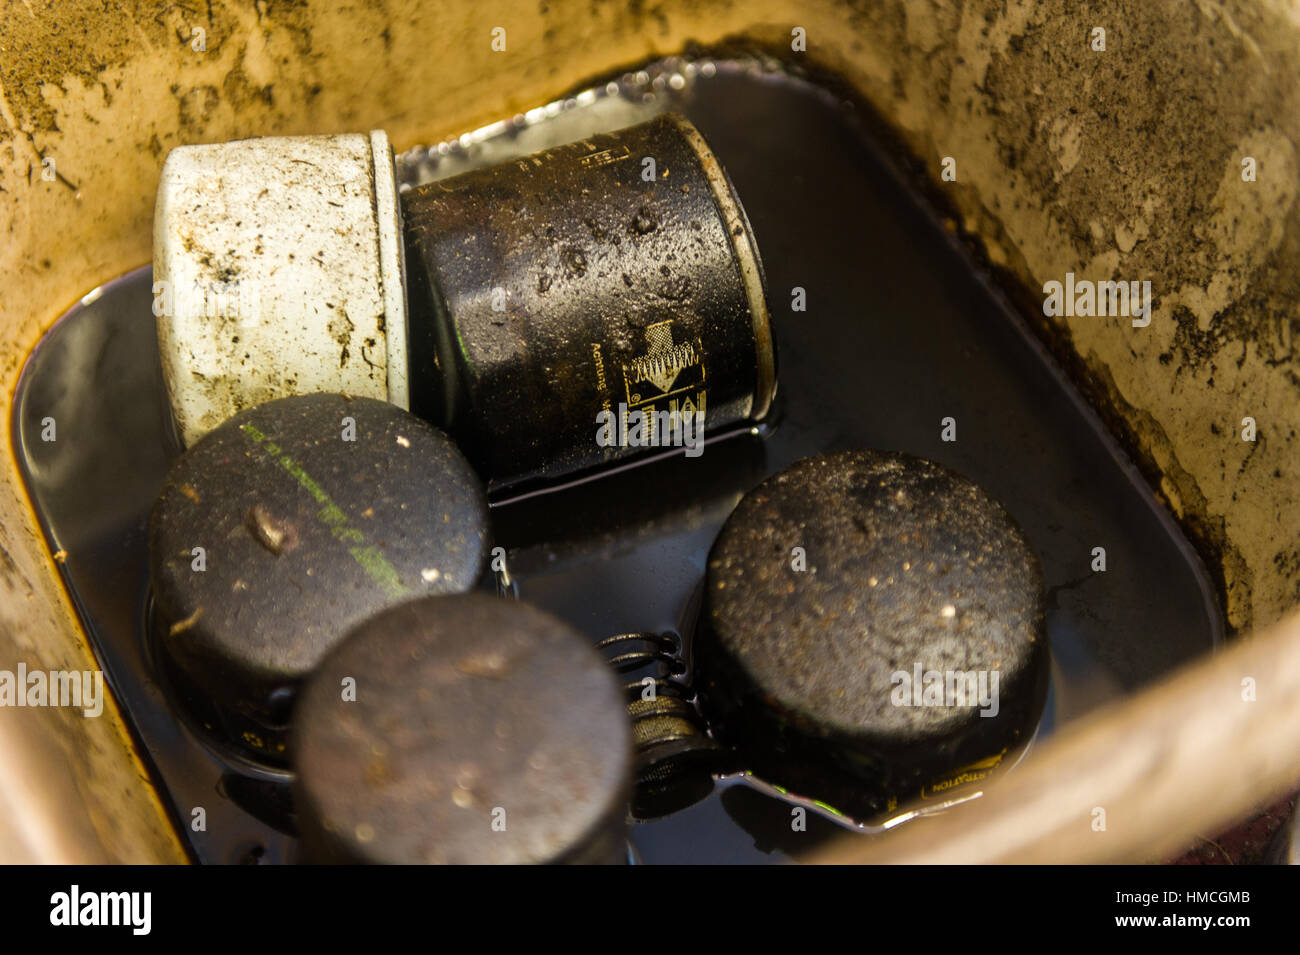 Old and used car oil filters in a bowl full of dirty/used oil. - Stock Image